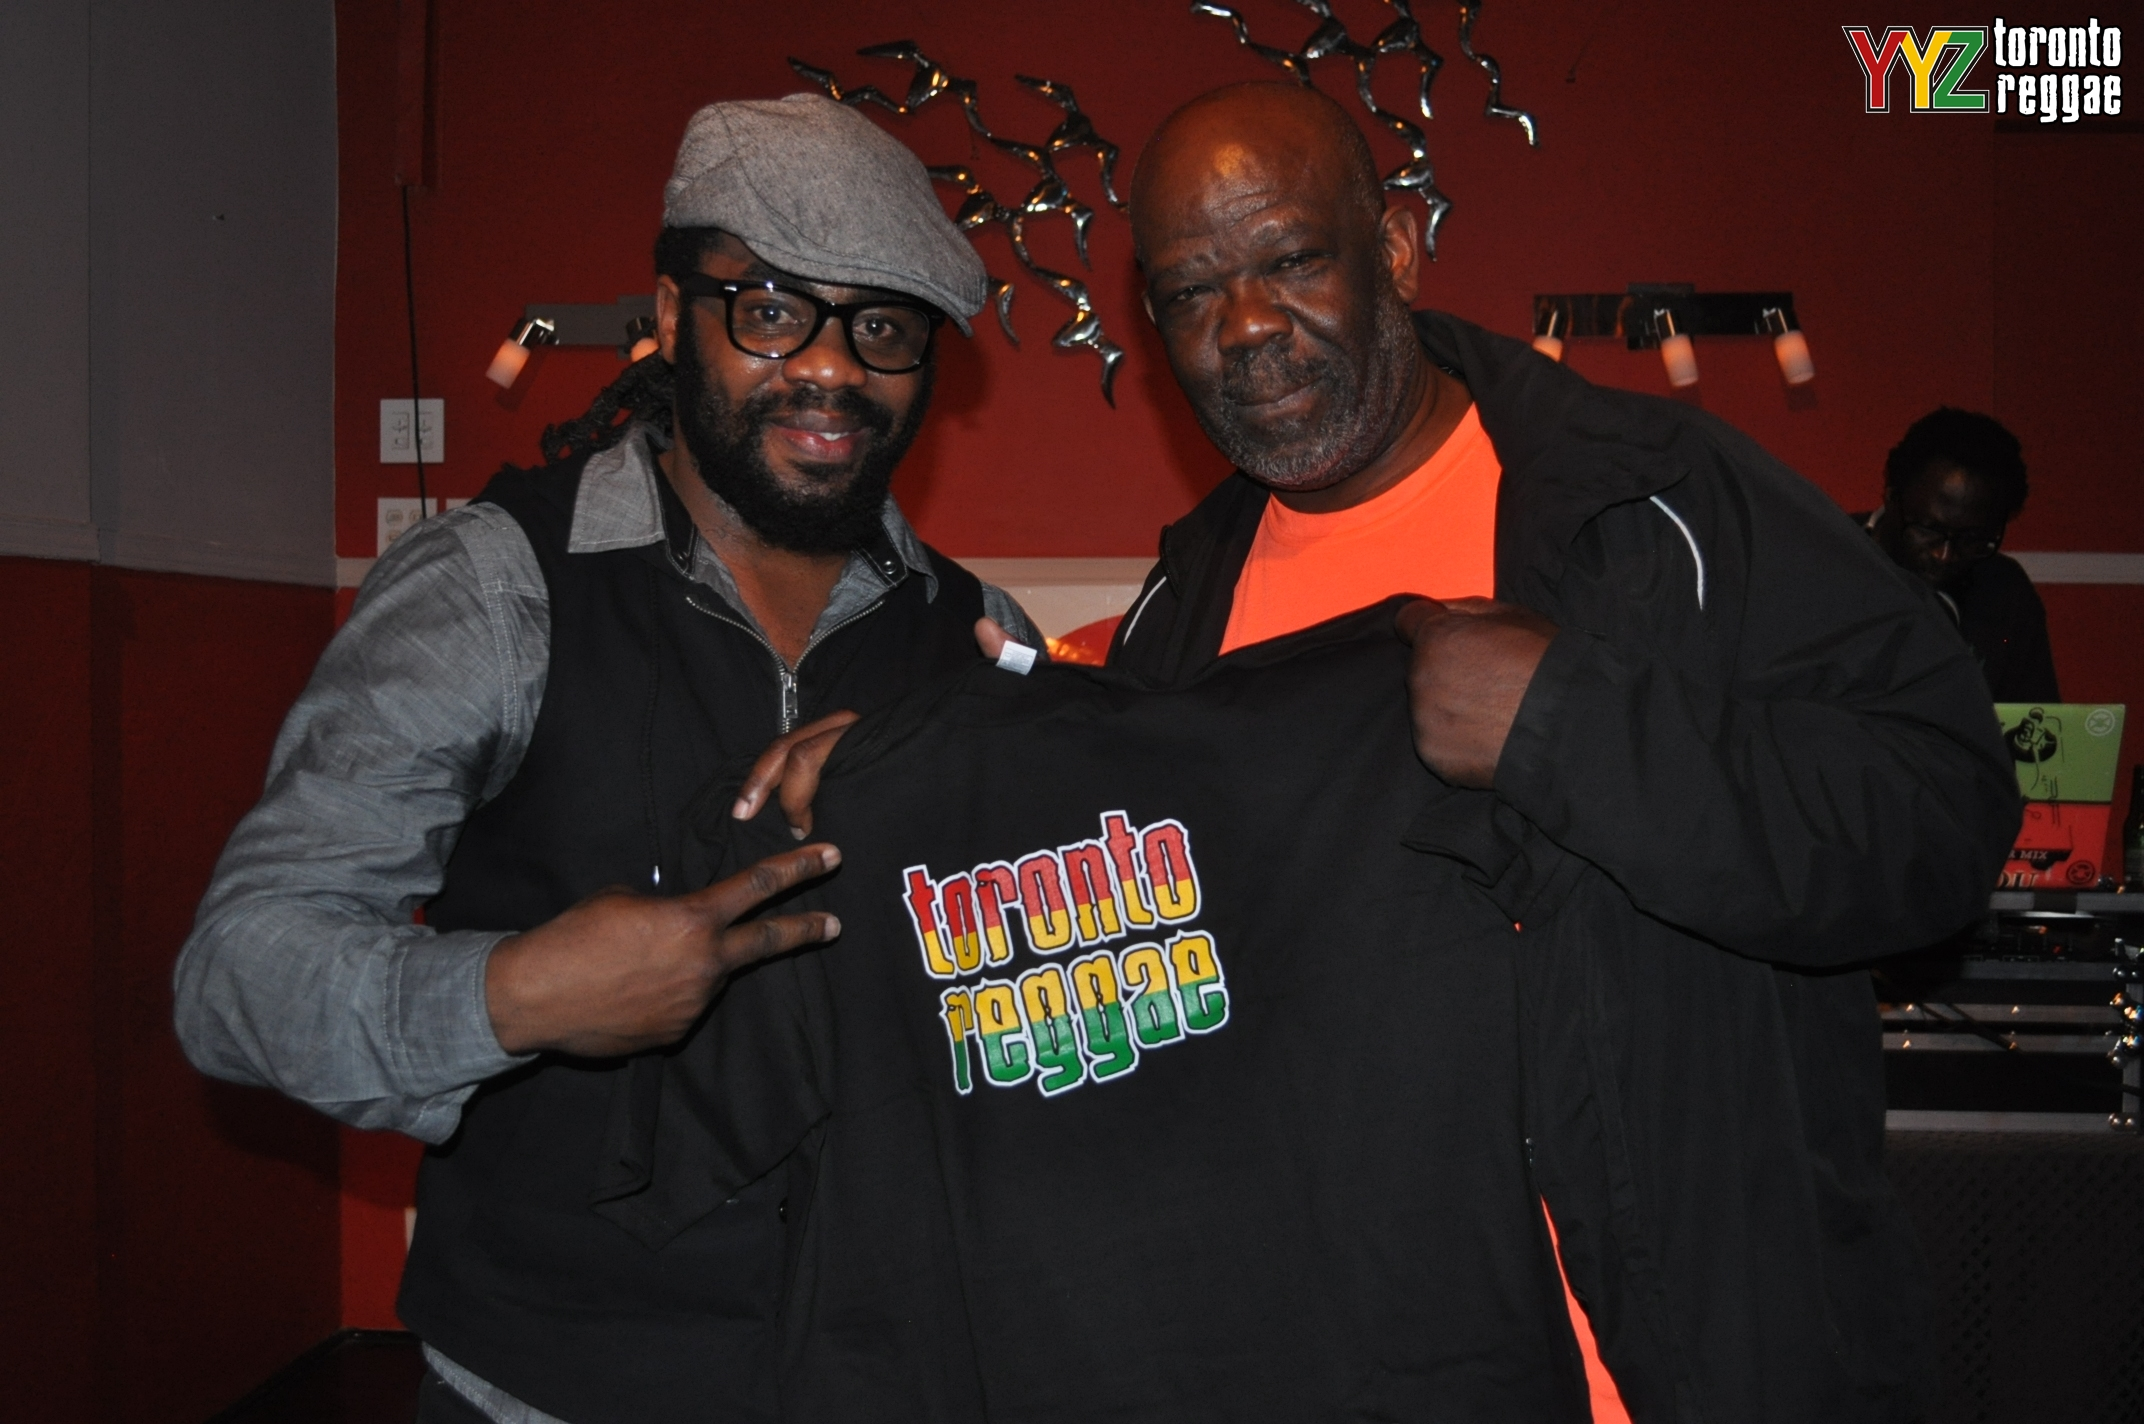 Exco Levi + Luther Brown  Exco Levi and Luther Brown repping Toronto Reggae! Sun, May 18, 2014